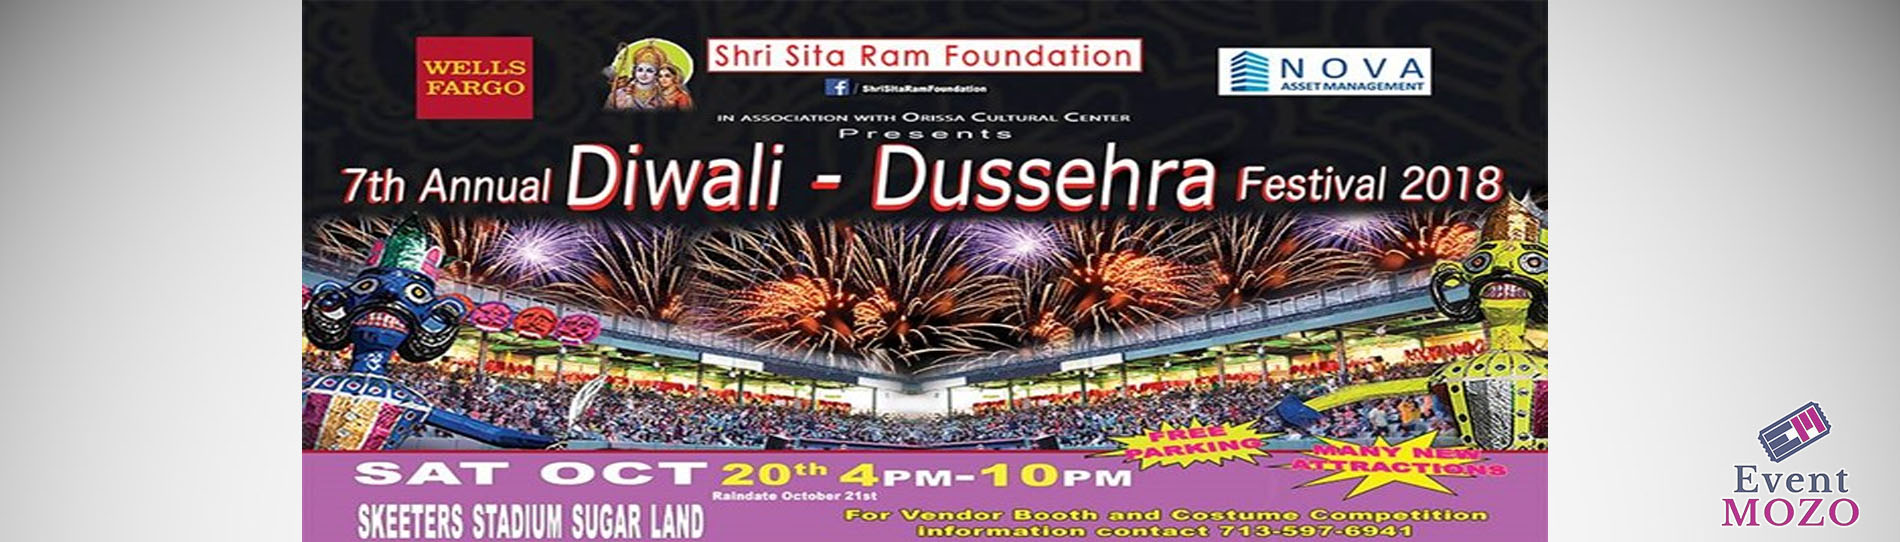 EventMozo 7th Annual Diwali - Dussehra Festival 2018